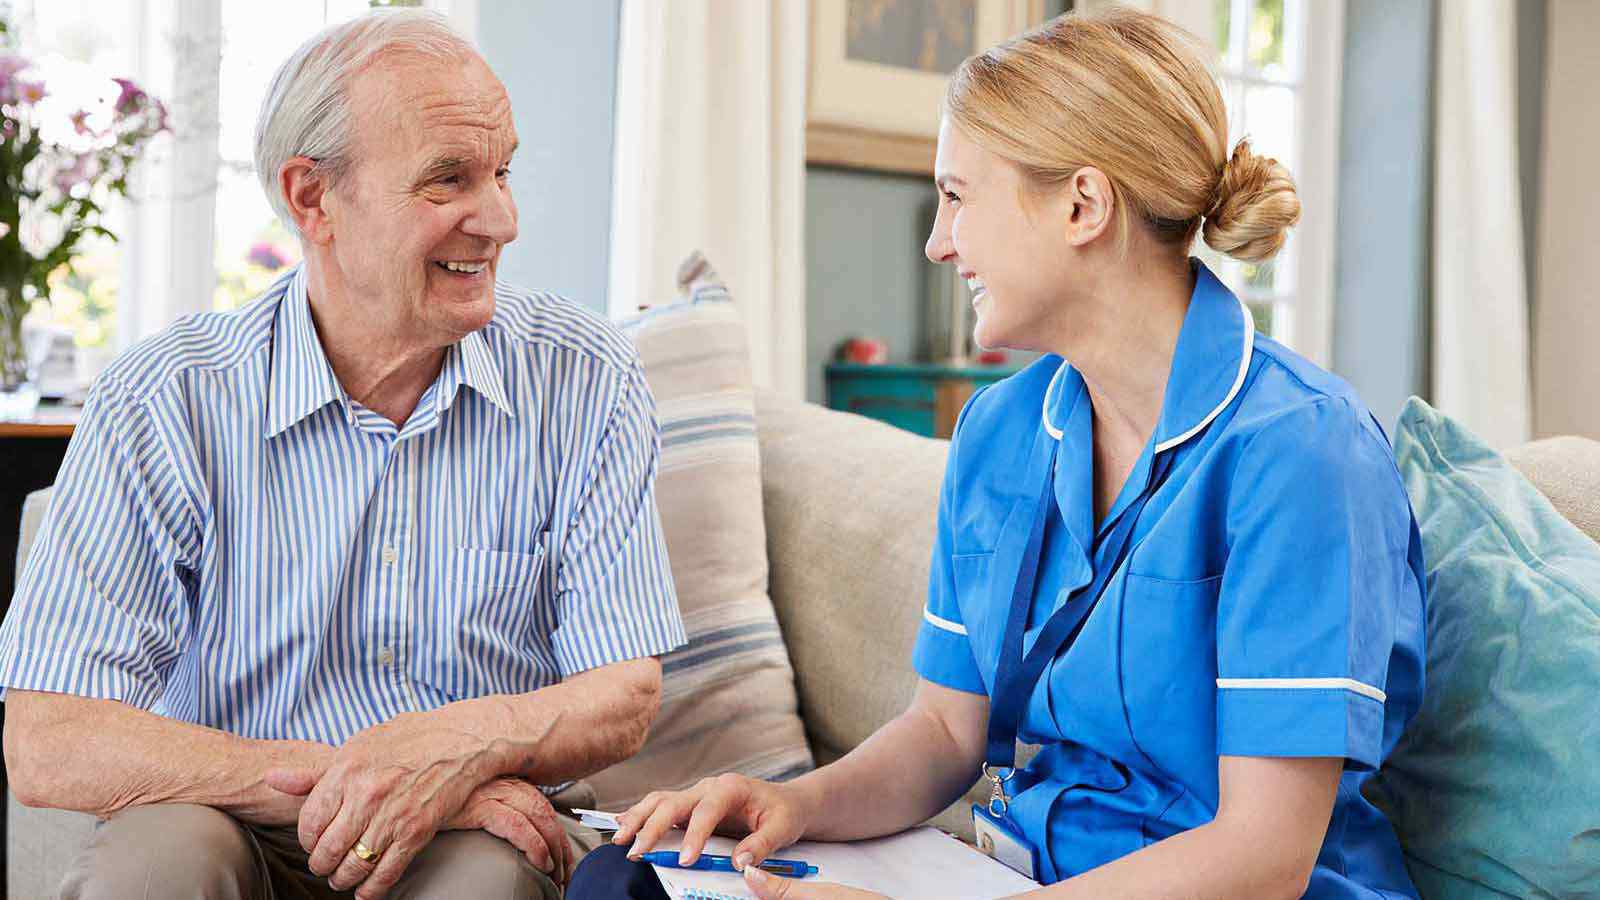 Nurse talking with patient on sofa